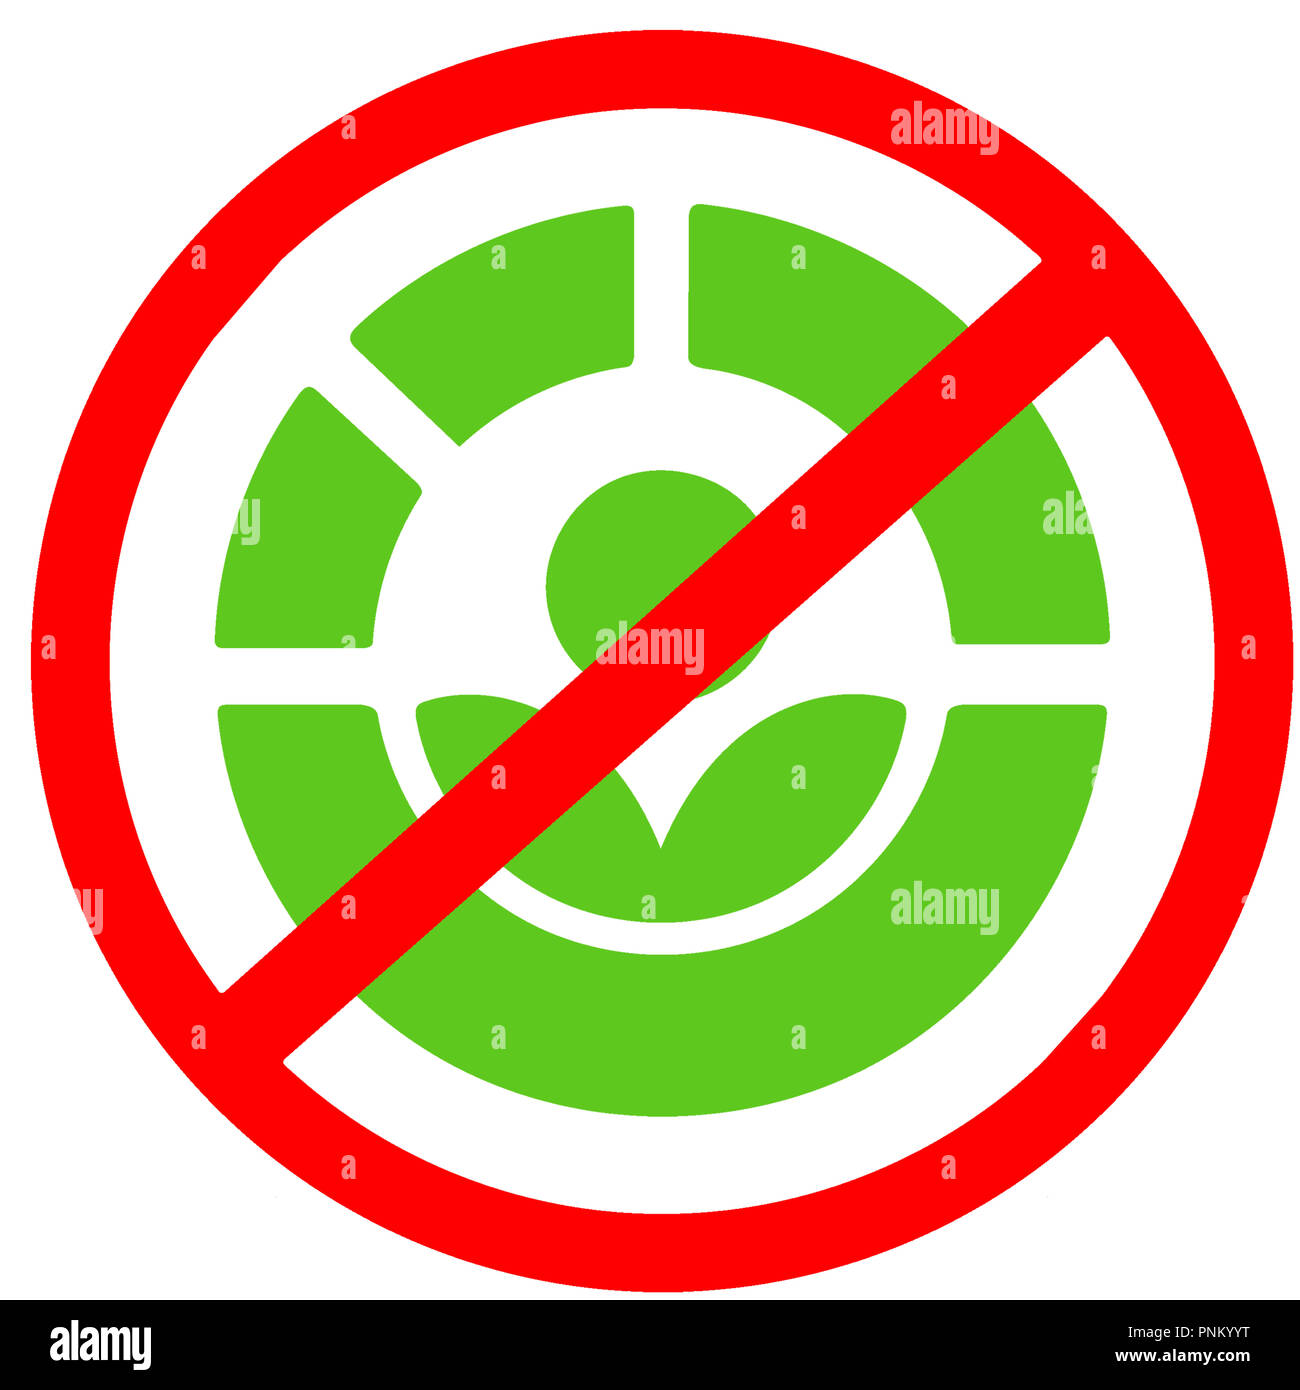 The Radura Process Not Allowed Disenfection For Food Red Circular